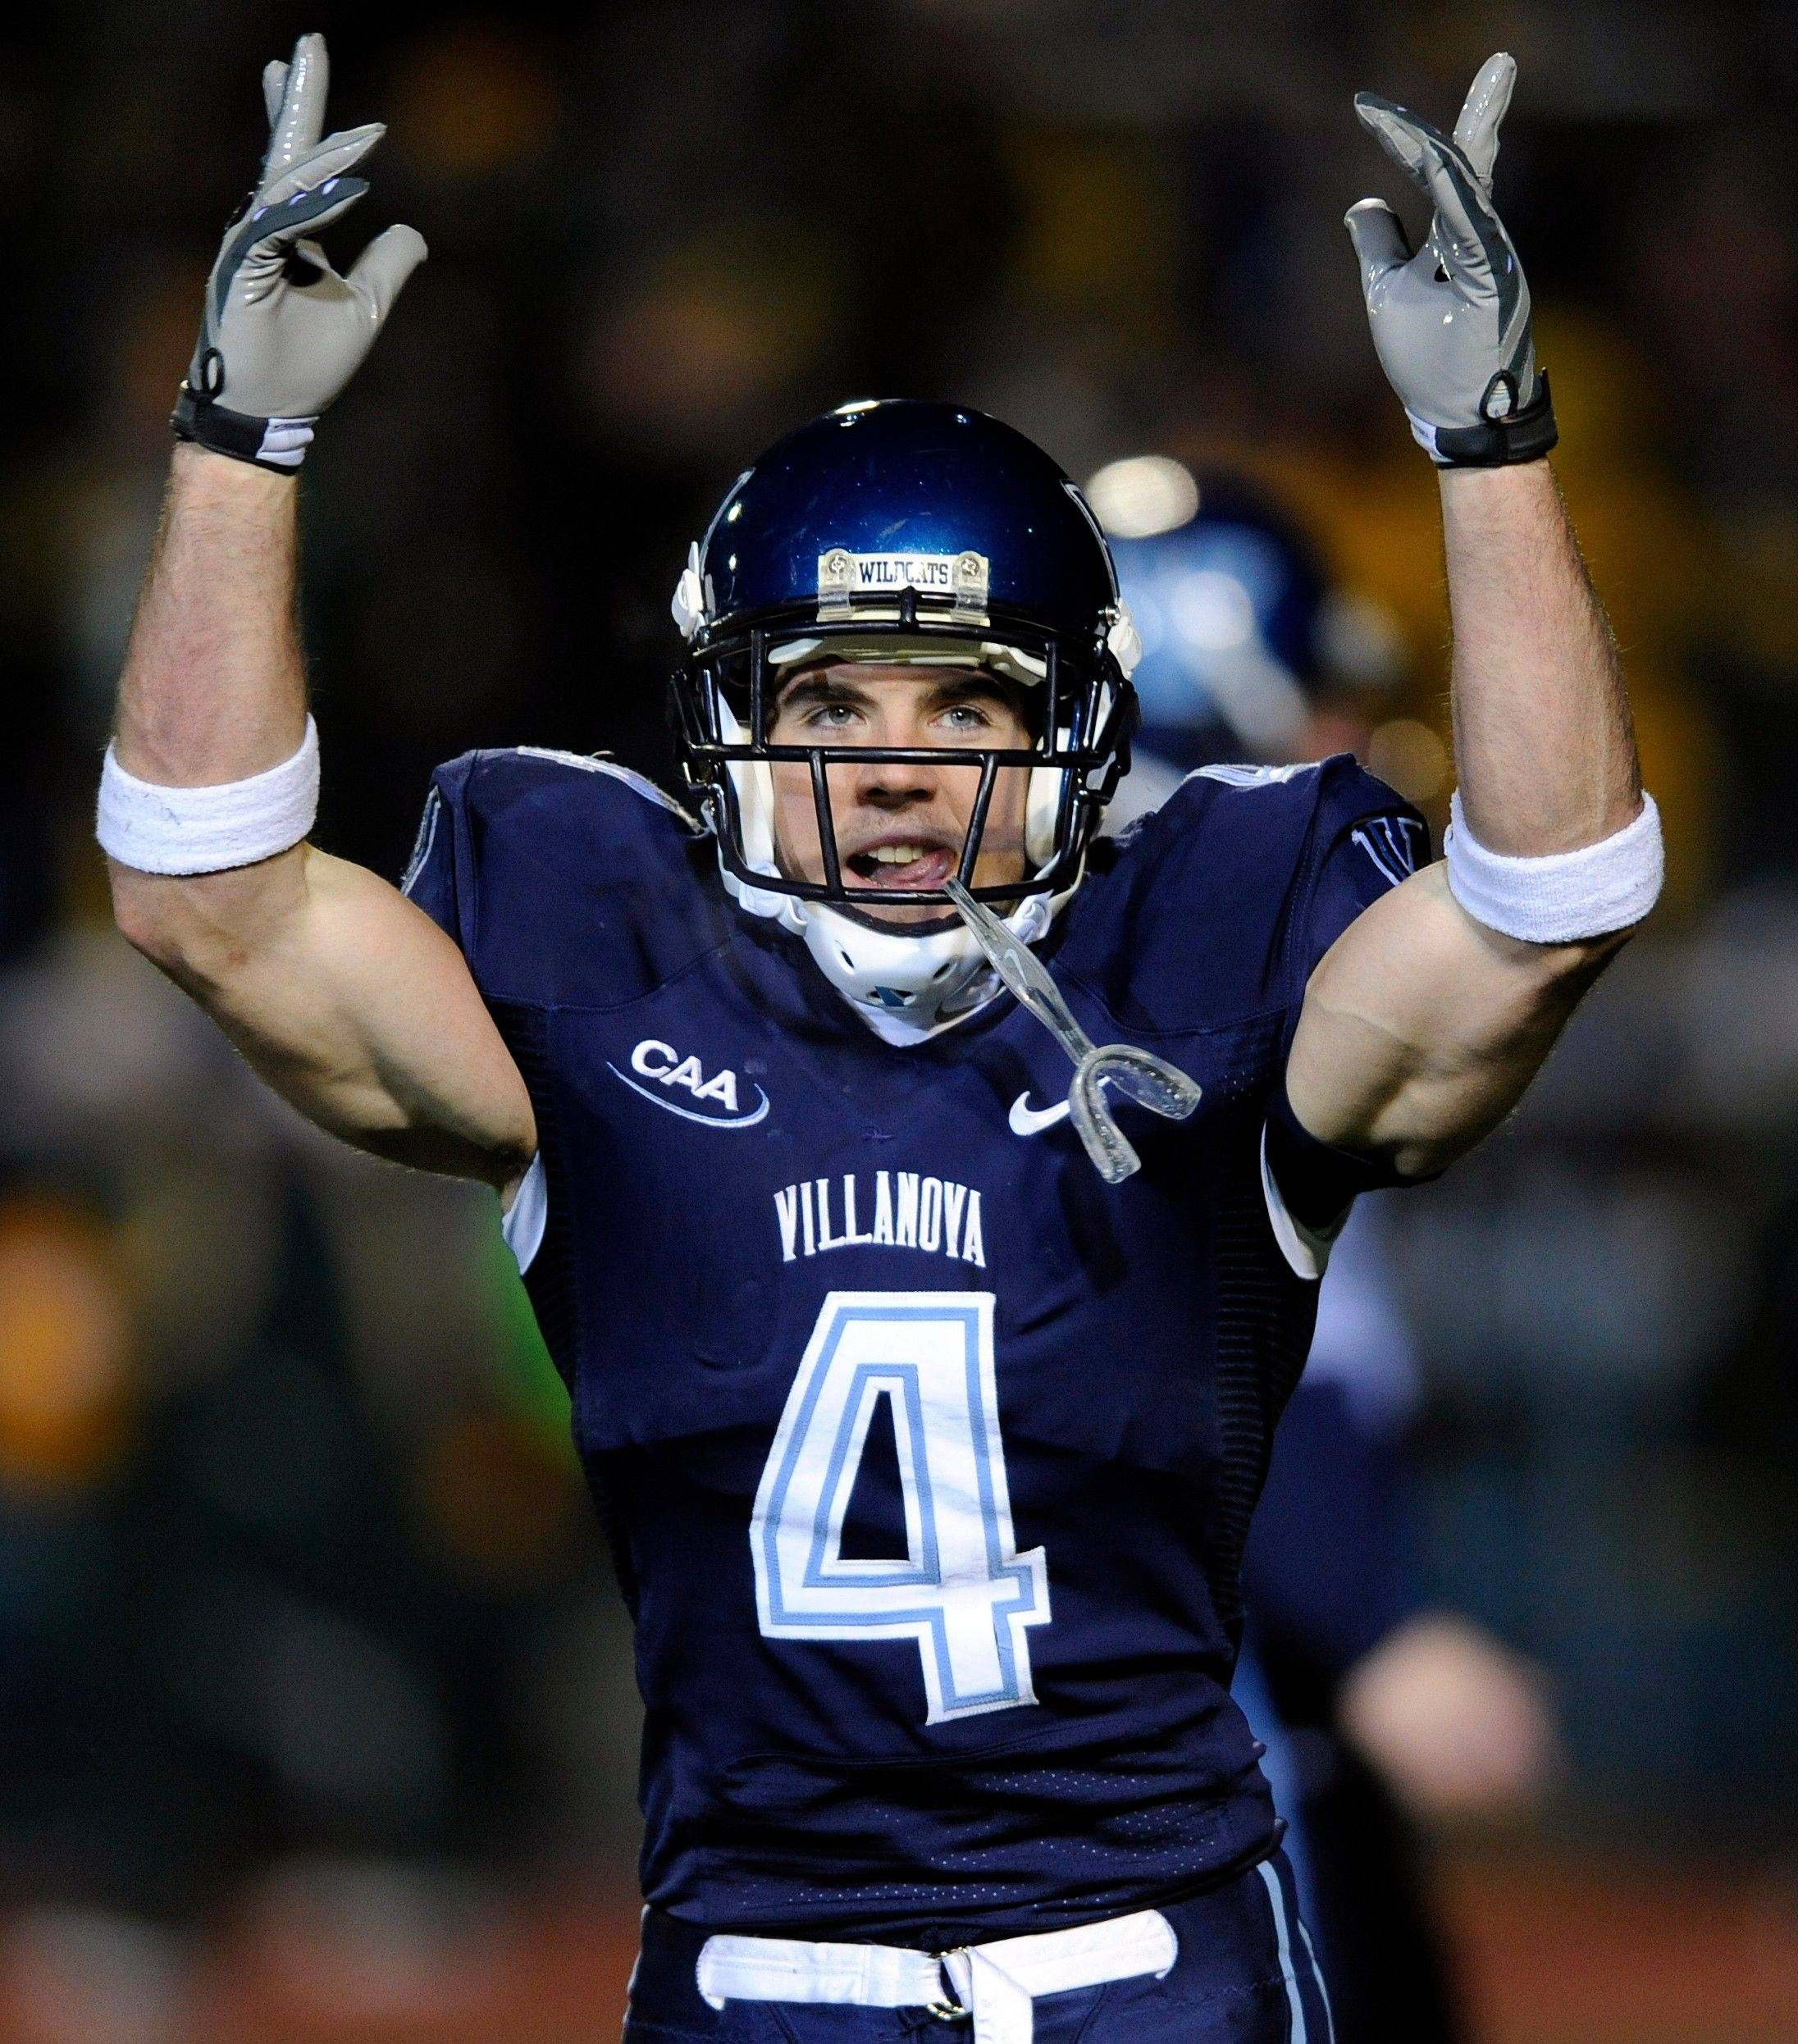 Villanova wide receiver Matt Szczur has signed a minor-league contract with the Cubs and will give up football.